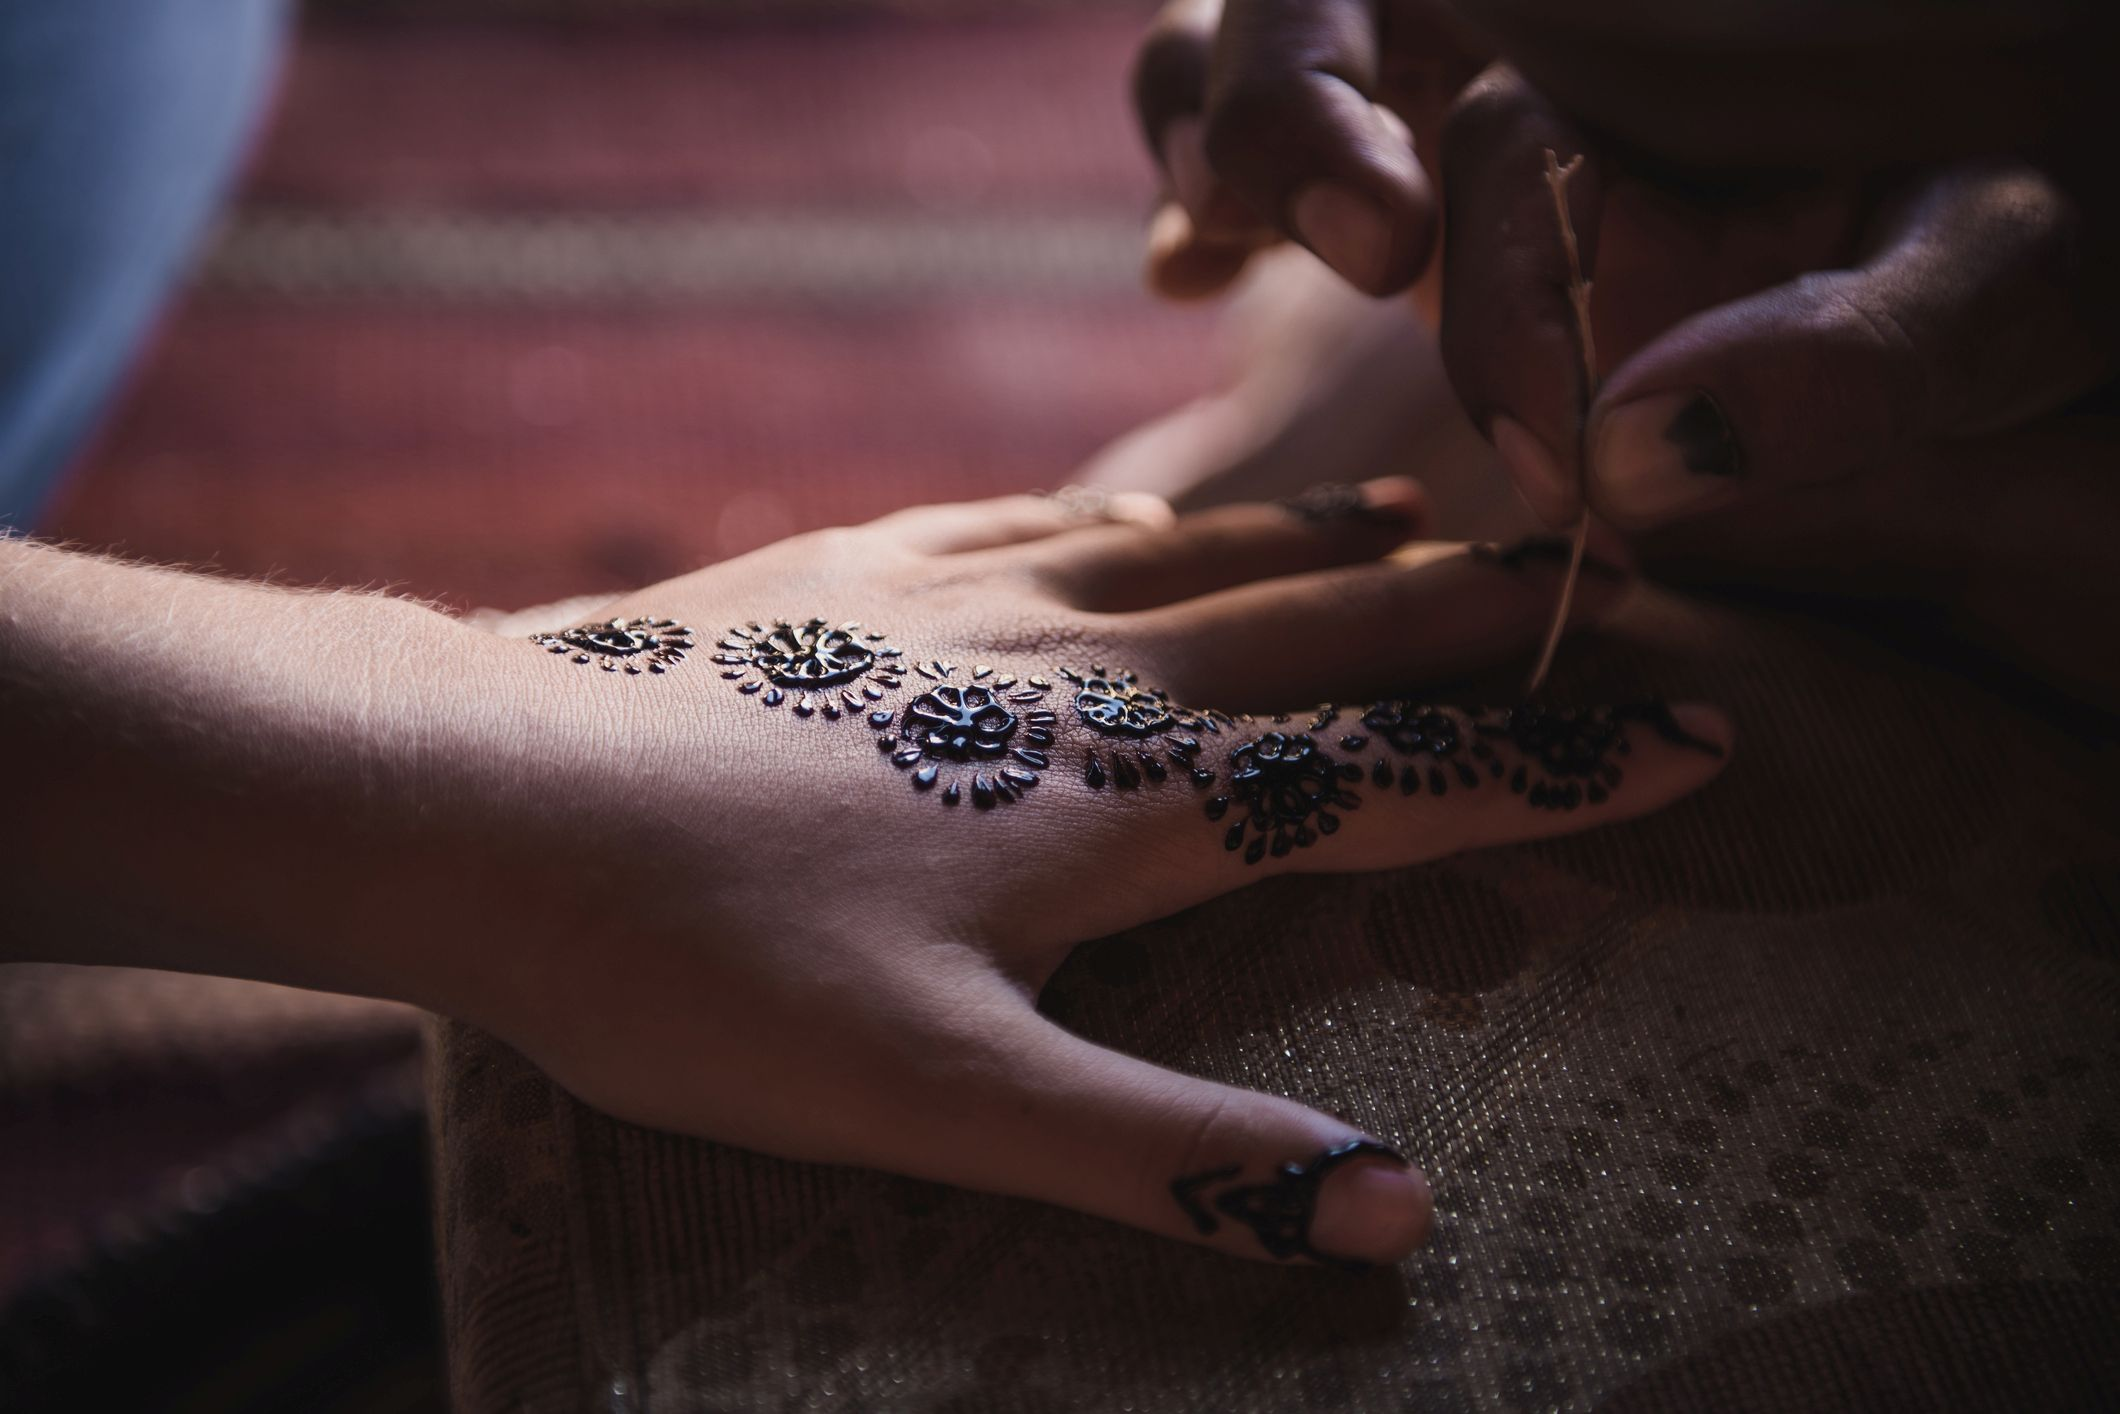 Bedouin lady applying henna (Thinkstock/PA)